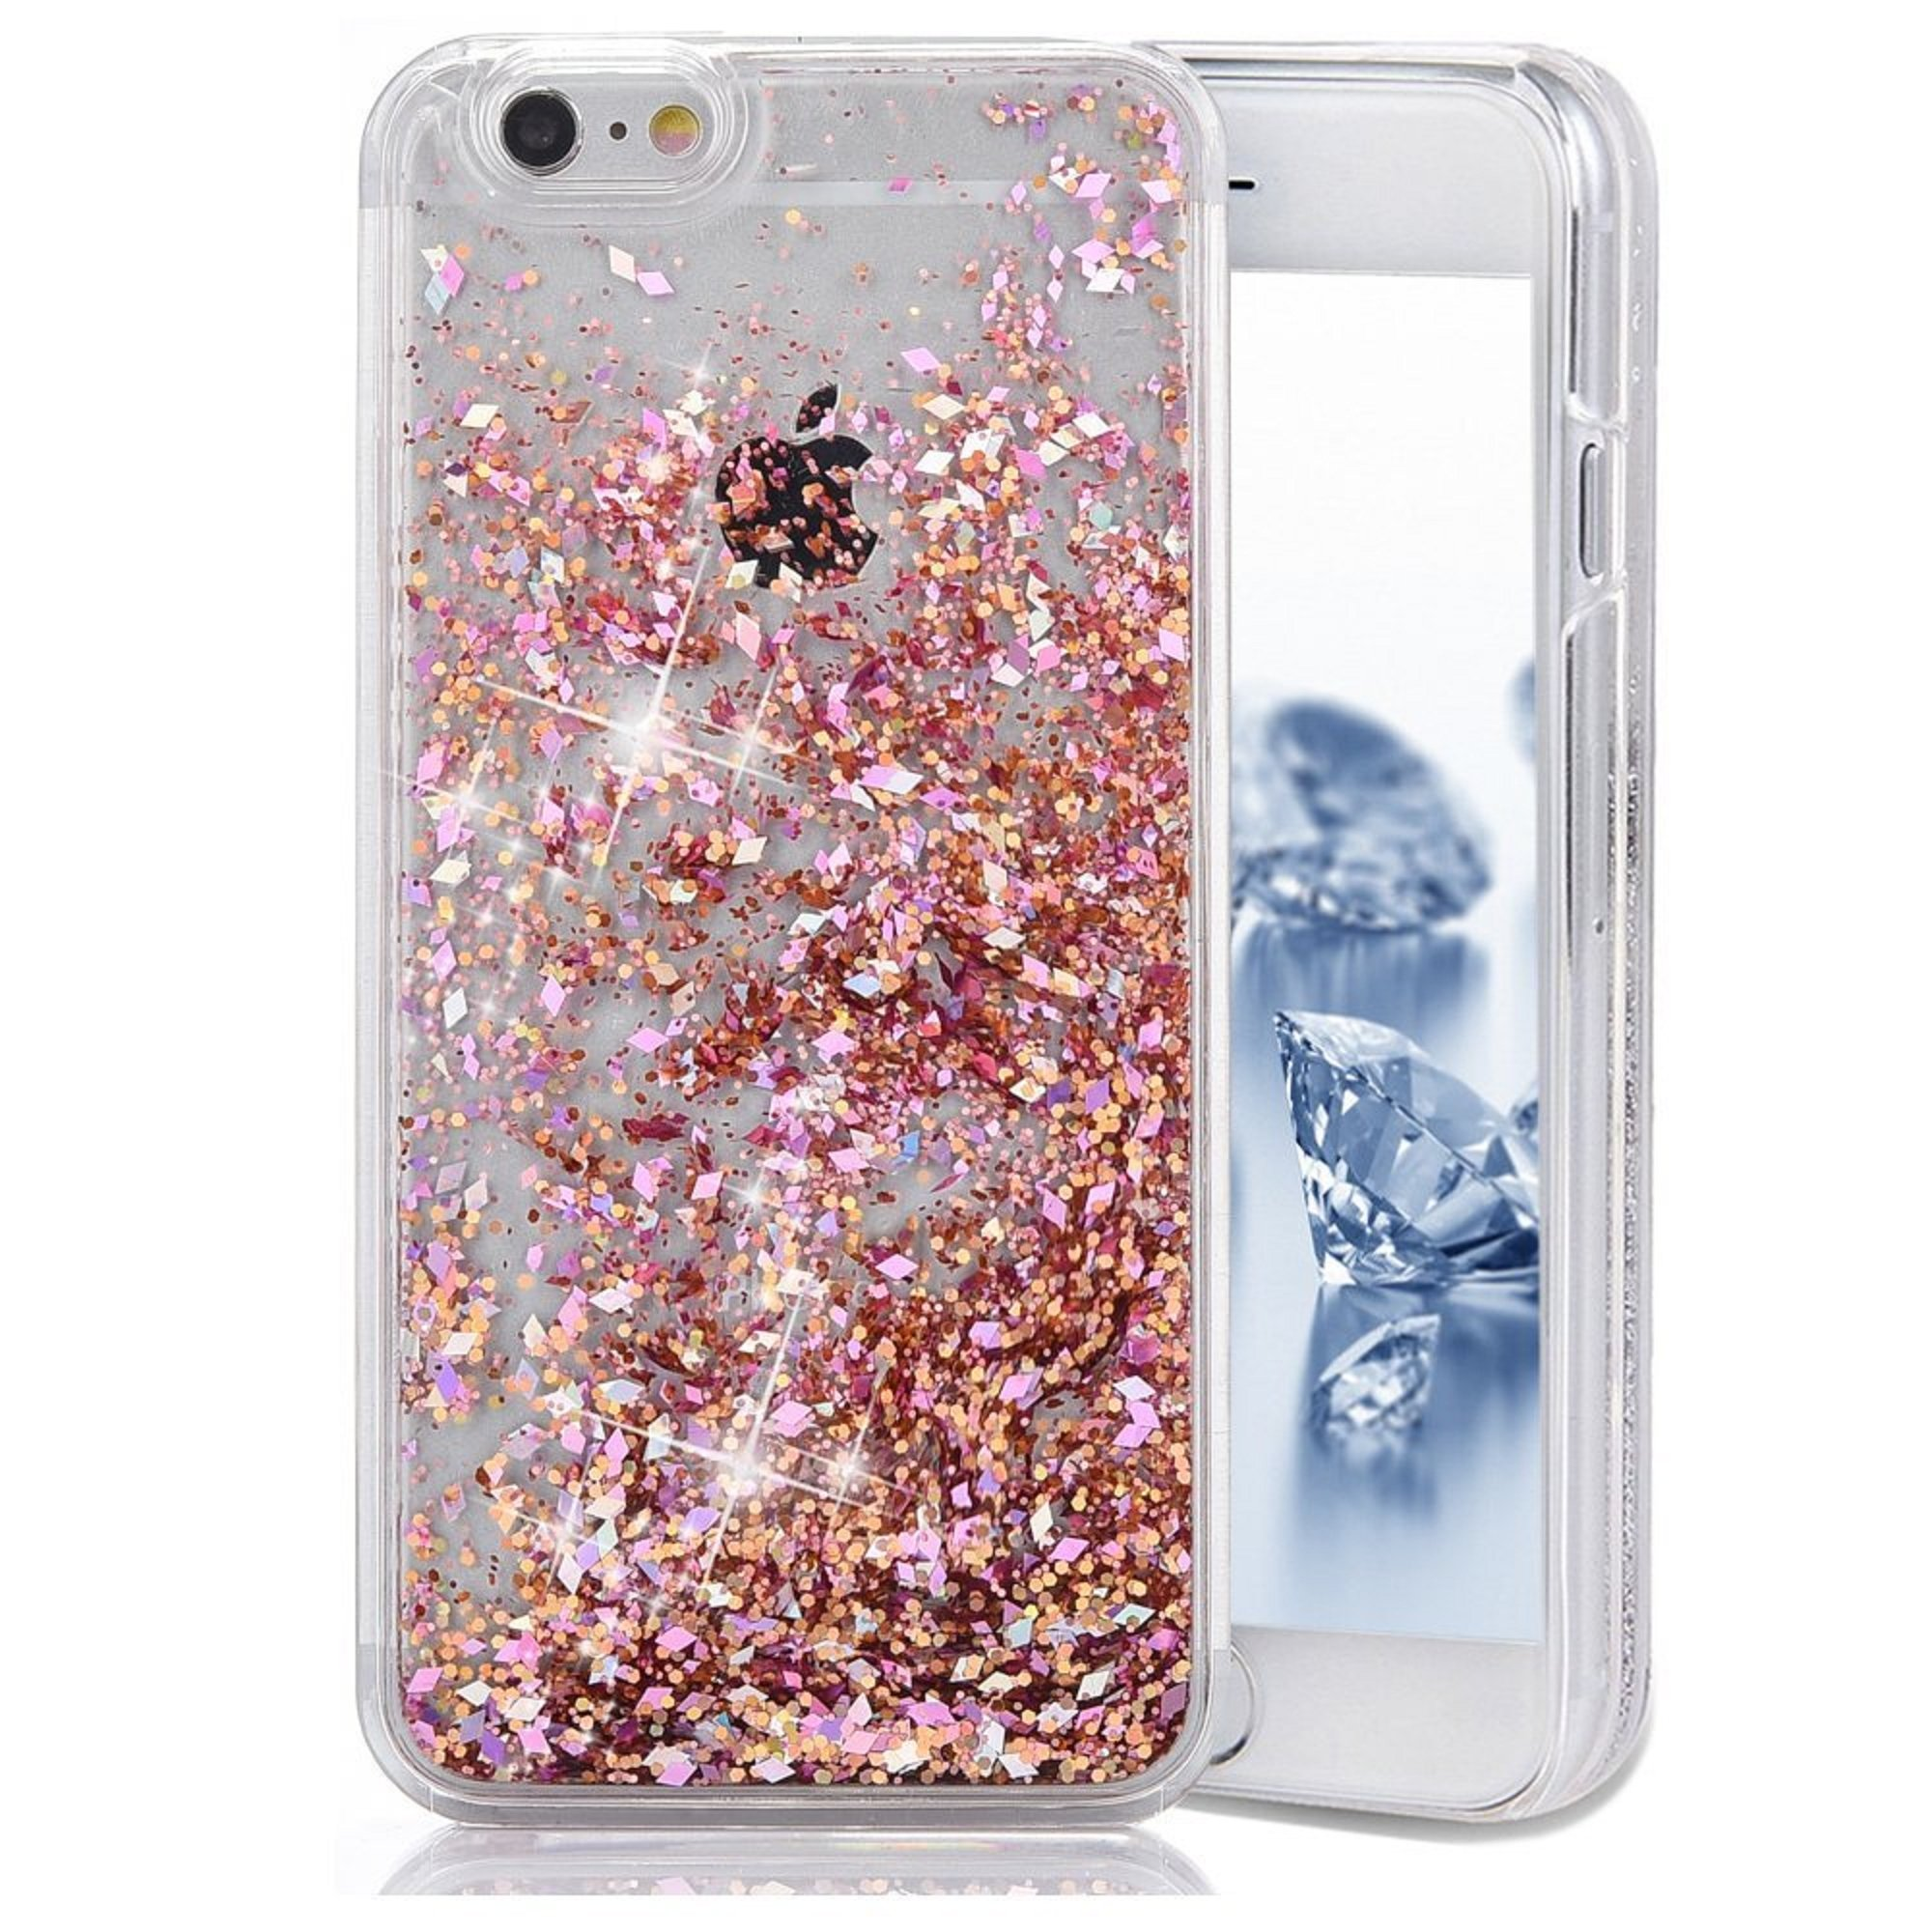 Urberry Iphone 7 Case Running Glitter Cover Sparkle Love Heart Creative Design Flowing